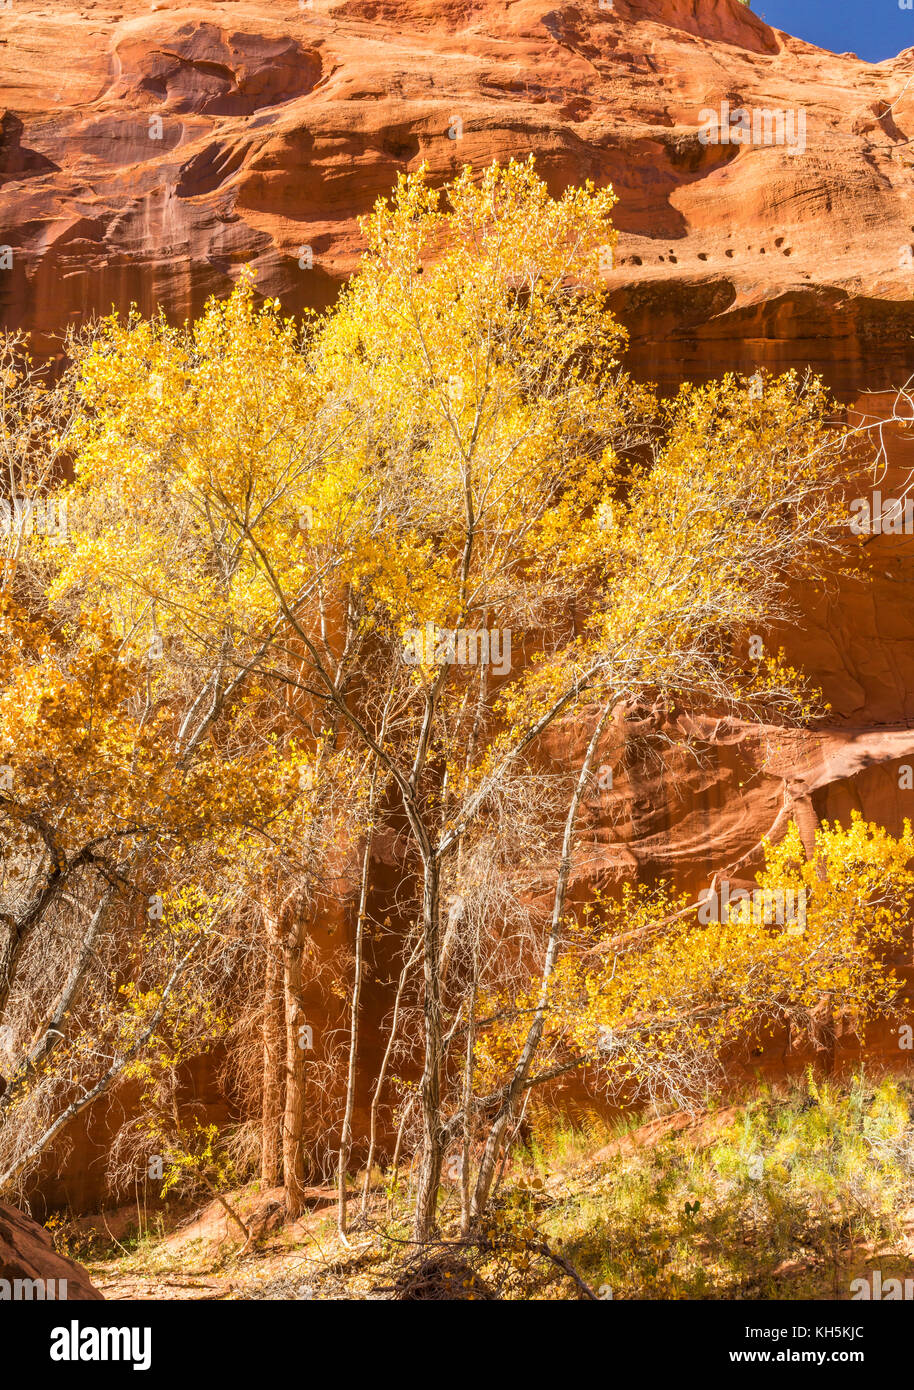 Cottonwood Trees in full Autumn color in Neon Canyon, Grand Staircase Escalante National Monument, Utah. Stock Photo